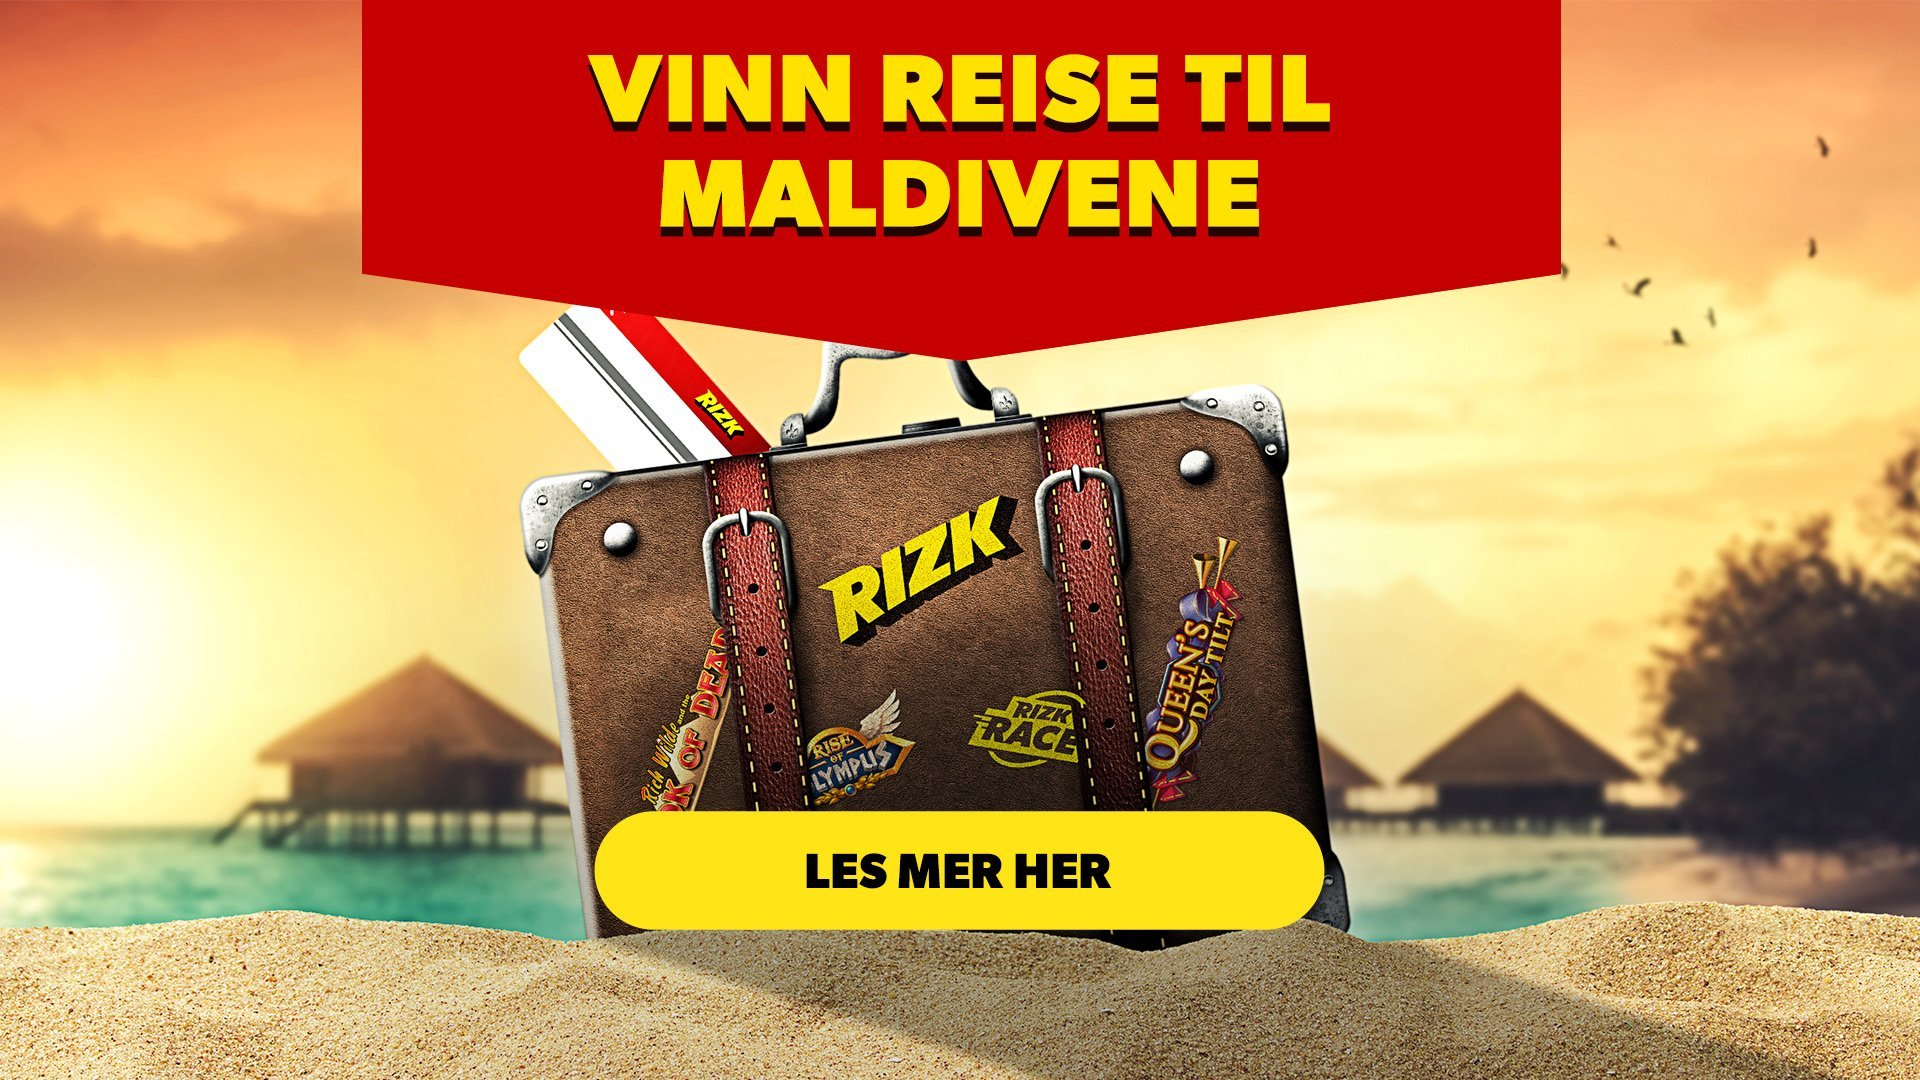 20-02-2019-Casino-PNG-Mystery-Prize-And-Races-Trip-Giveaway-Cave-NO